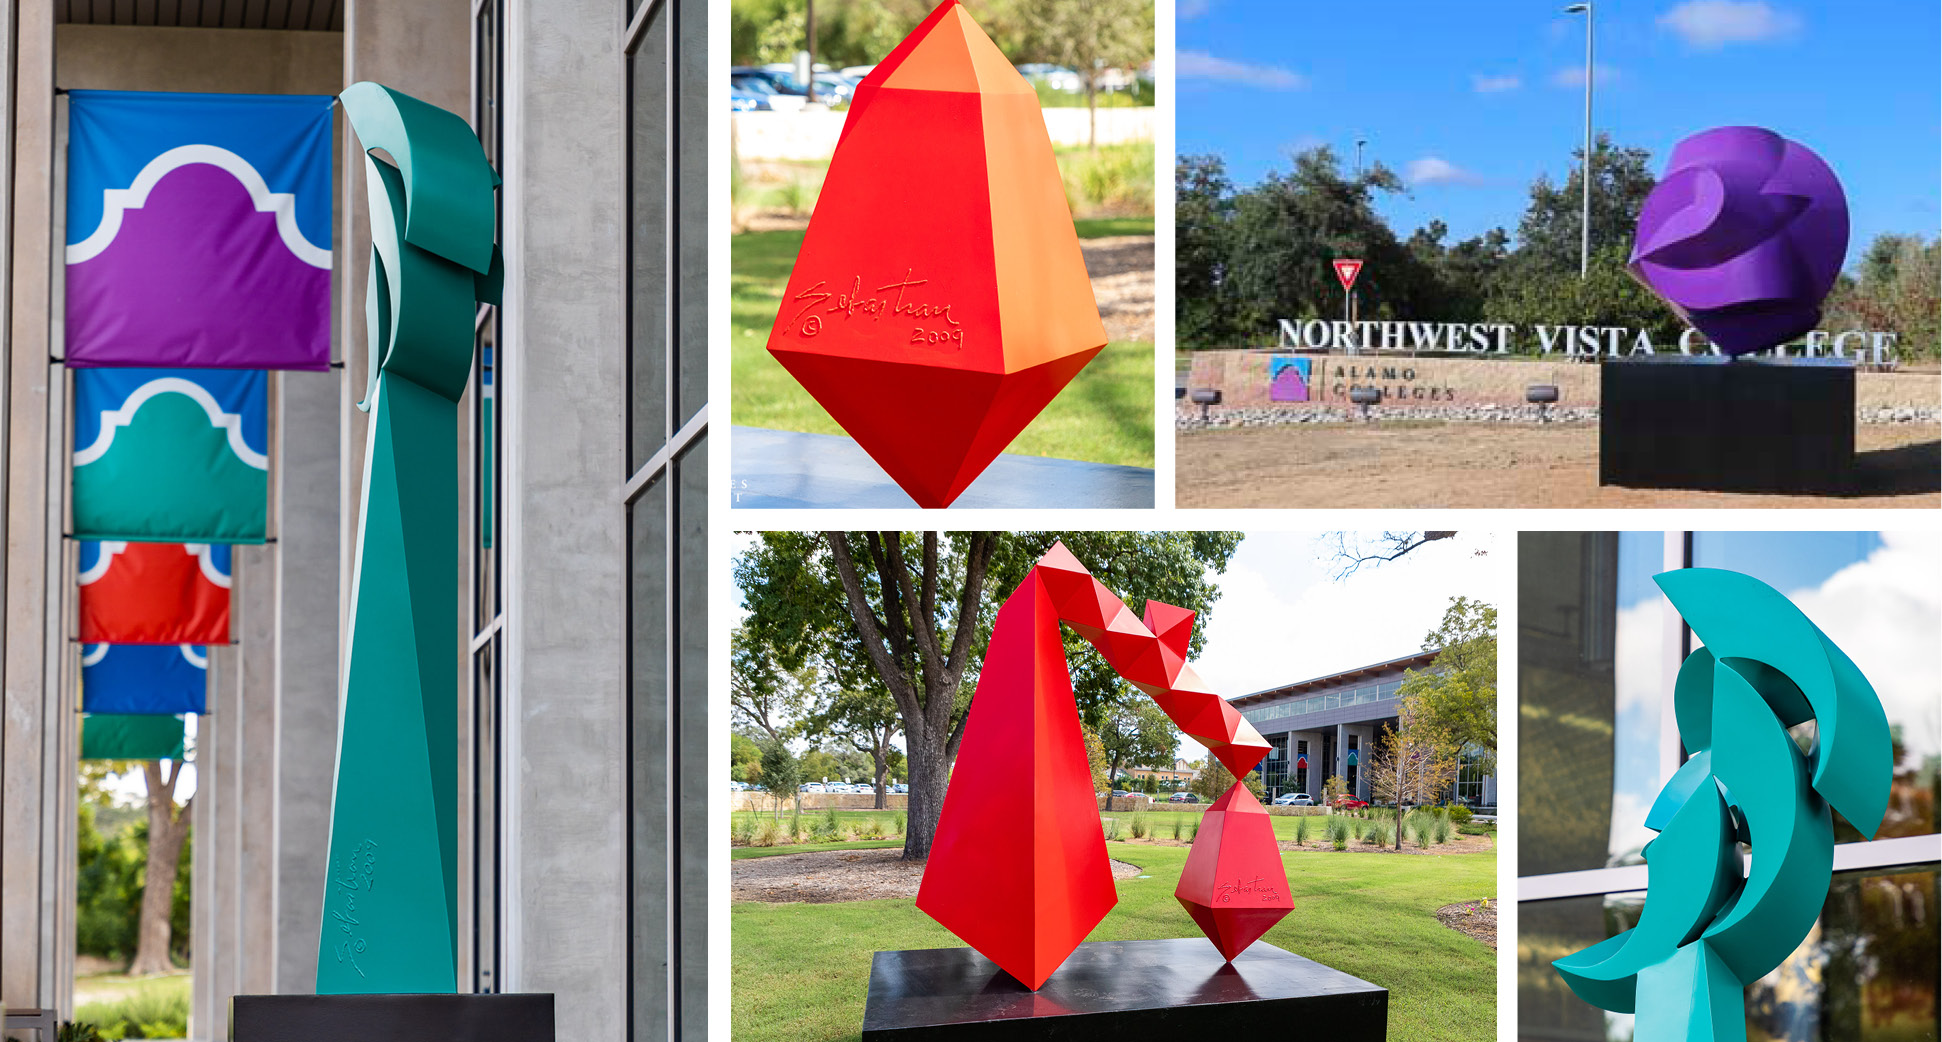 Art Installations Across Colleges